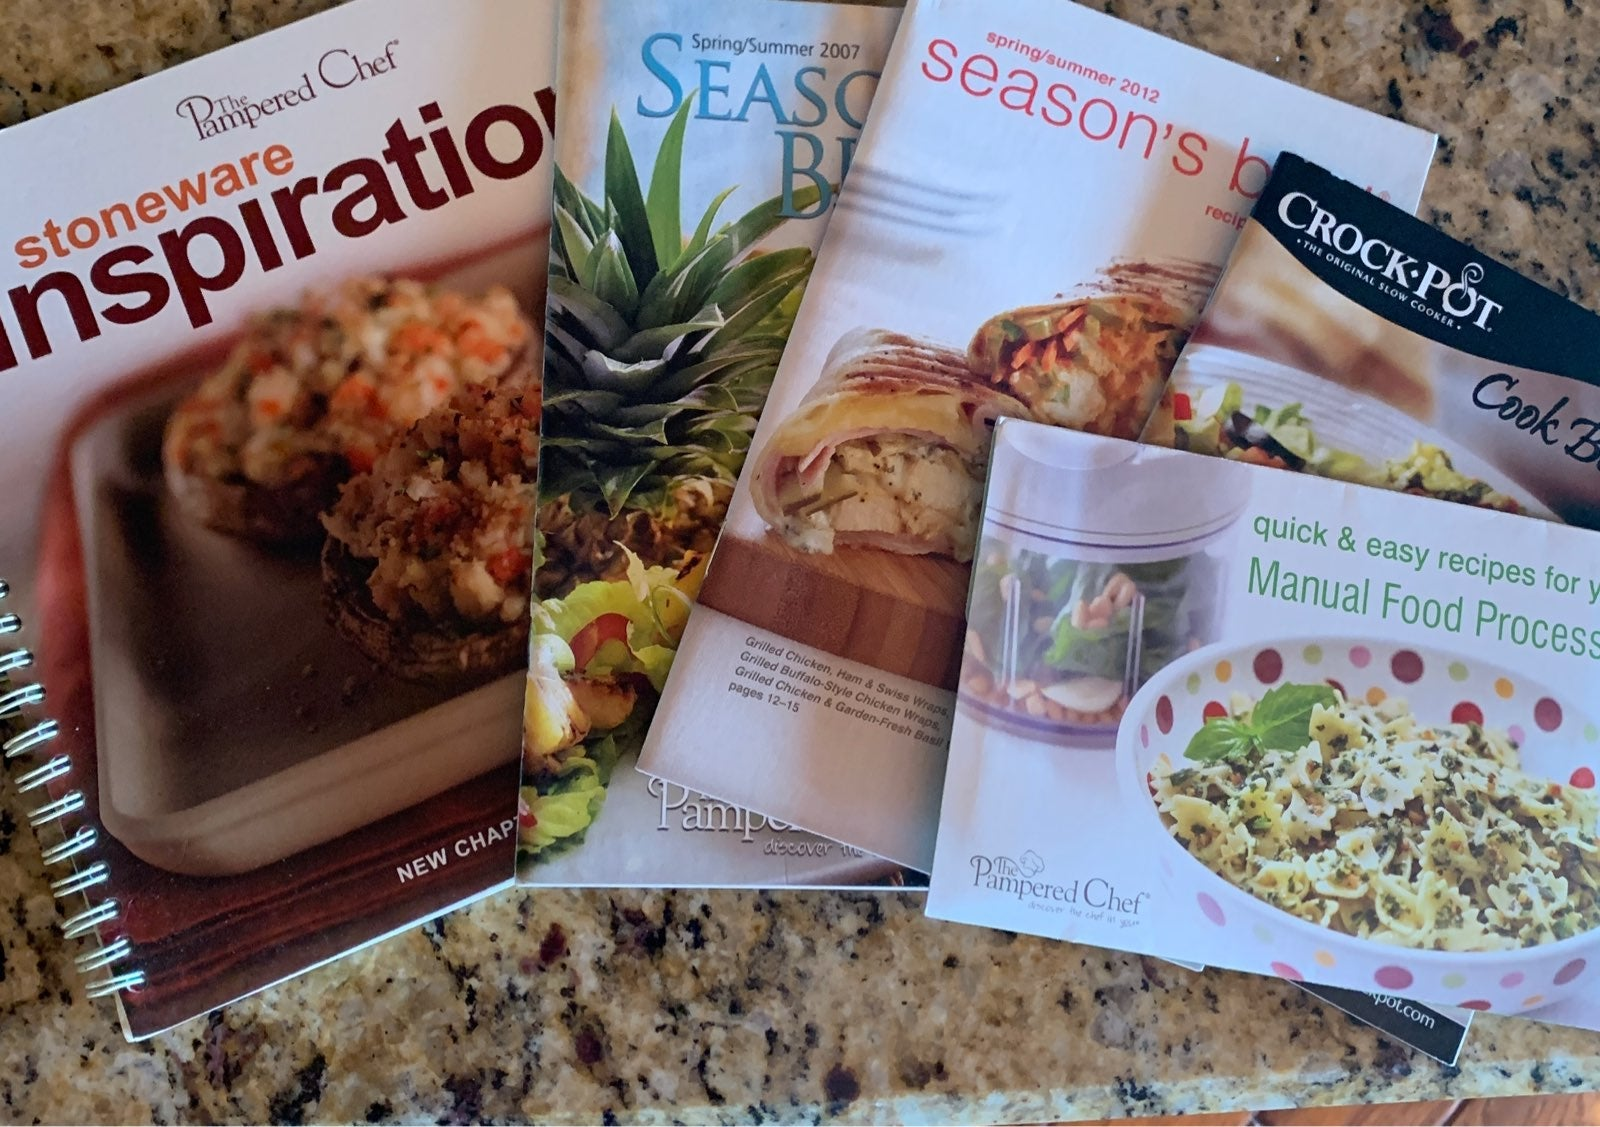 Pampered chef Cookbooks seasons best sto